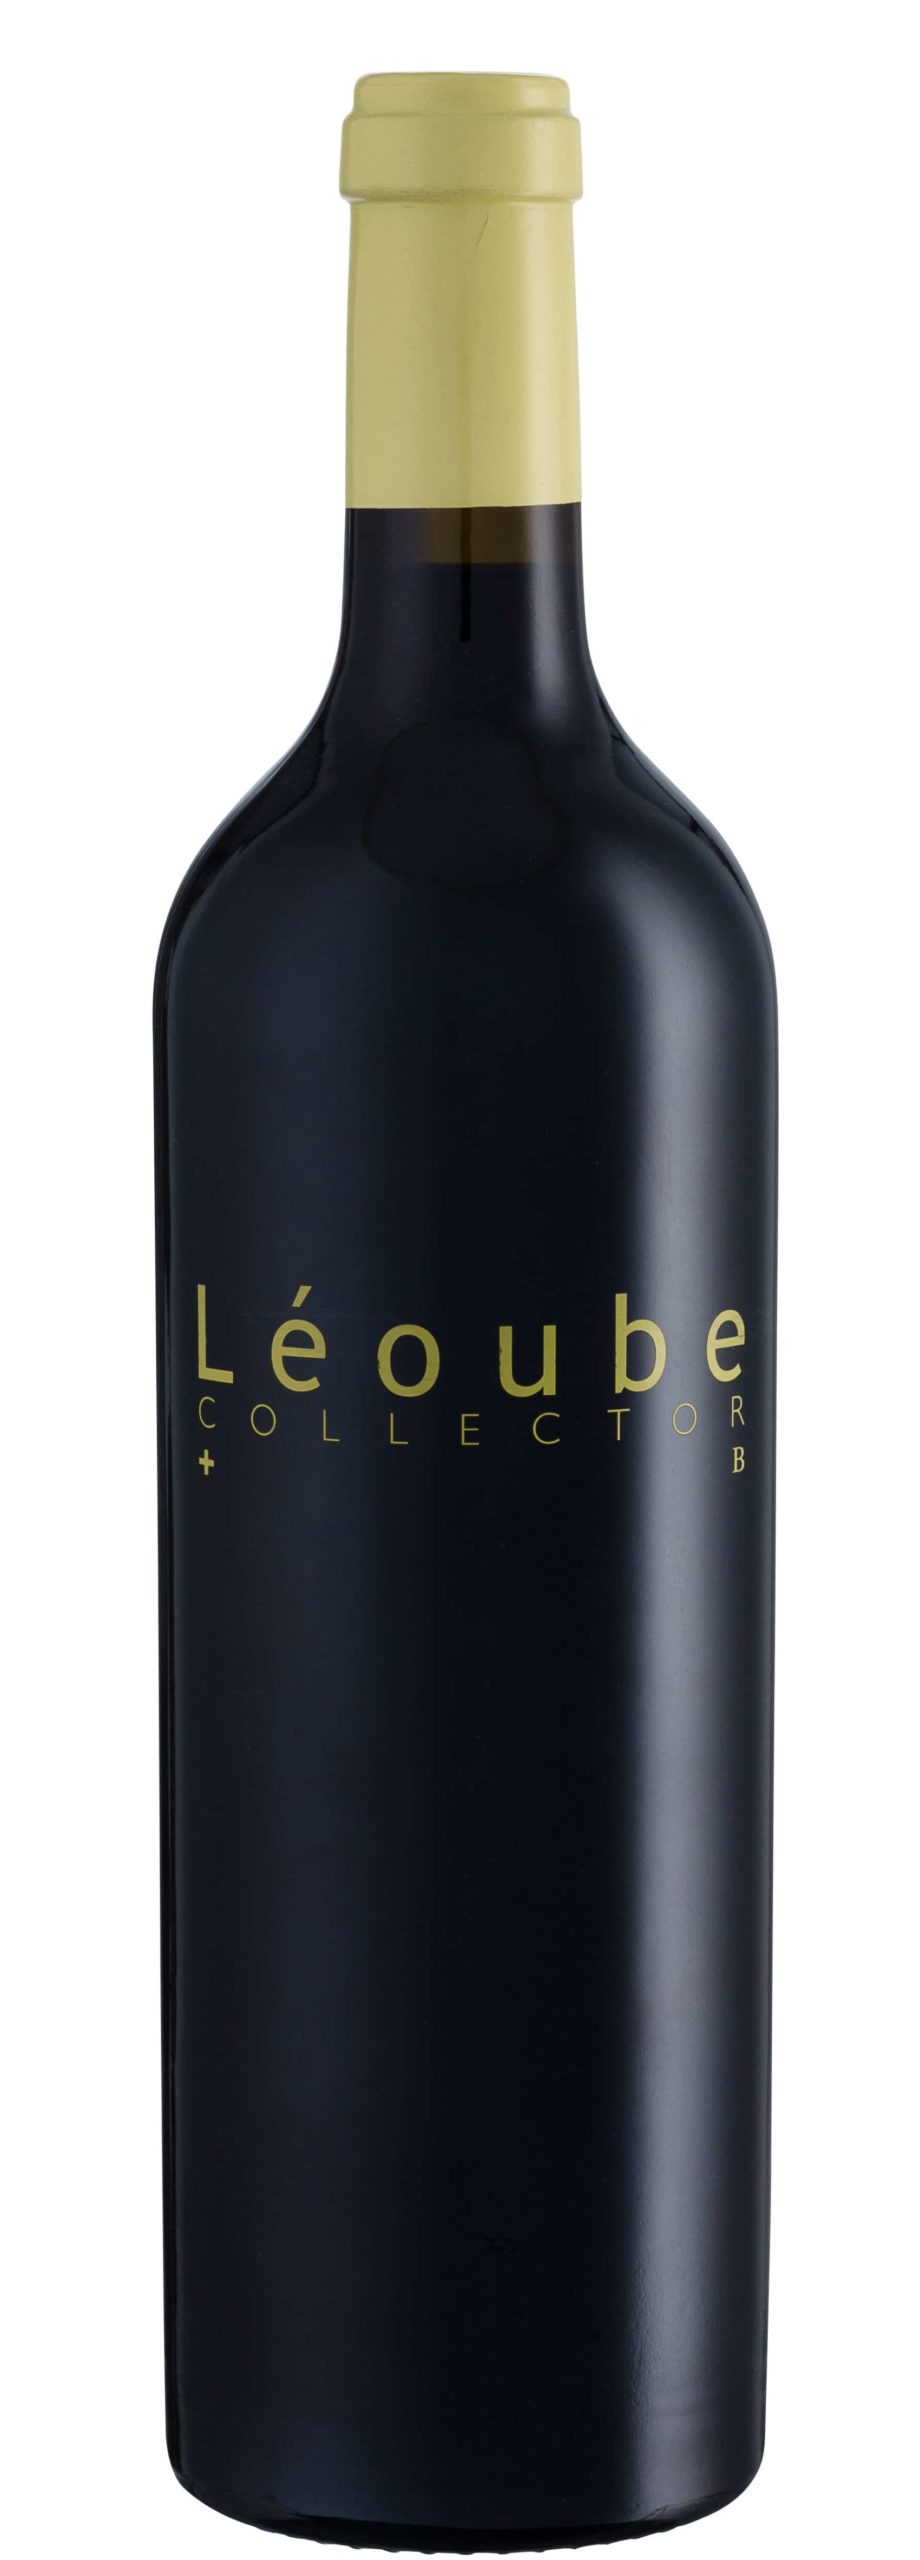 Collector-leoube